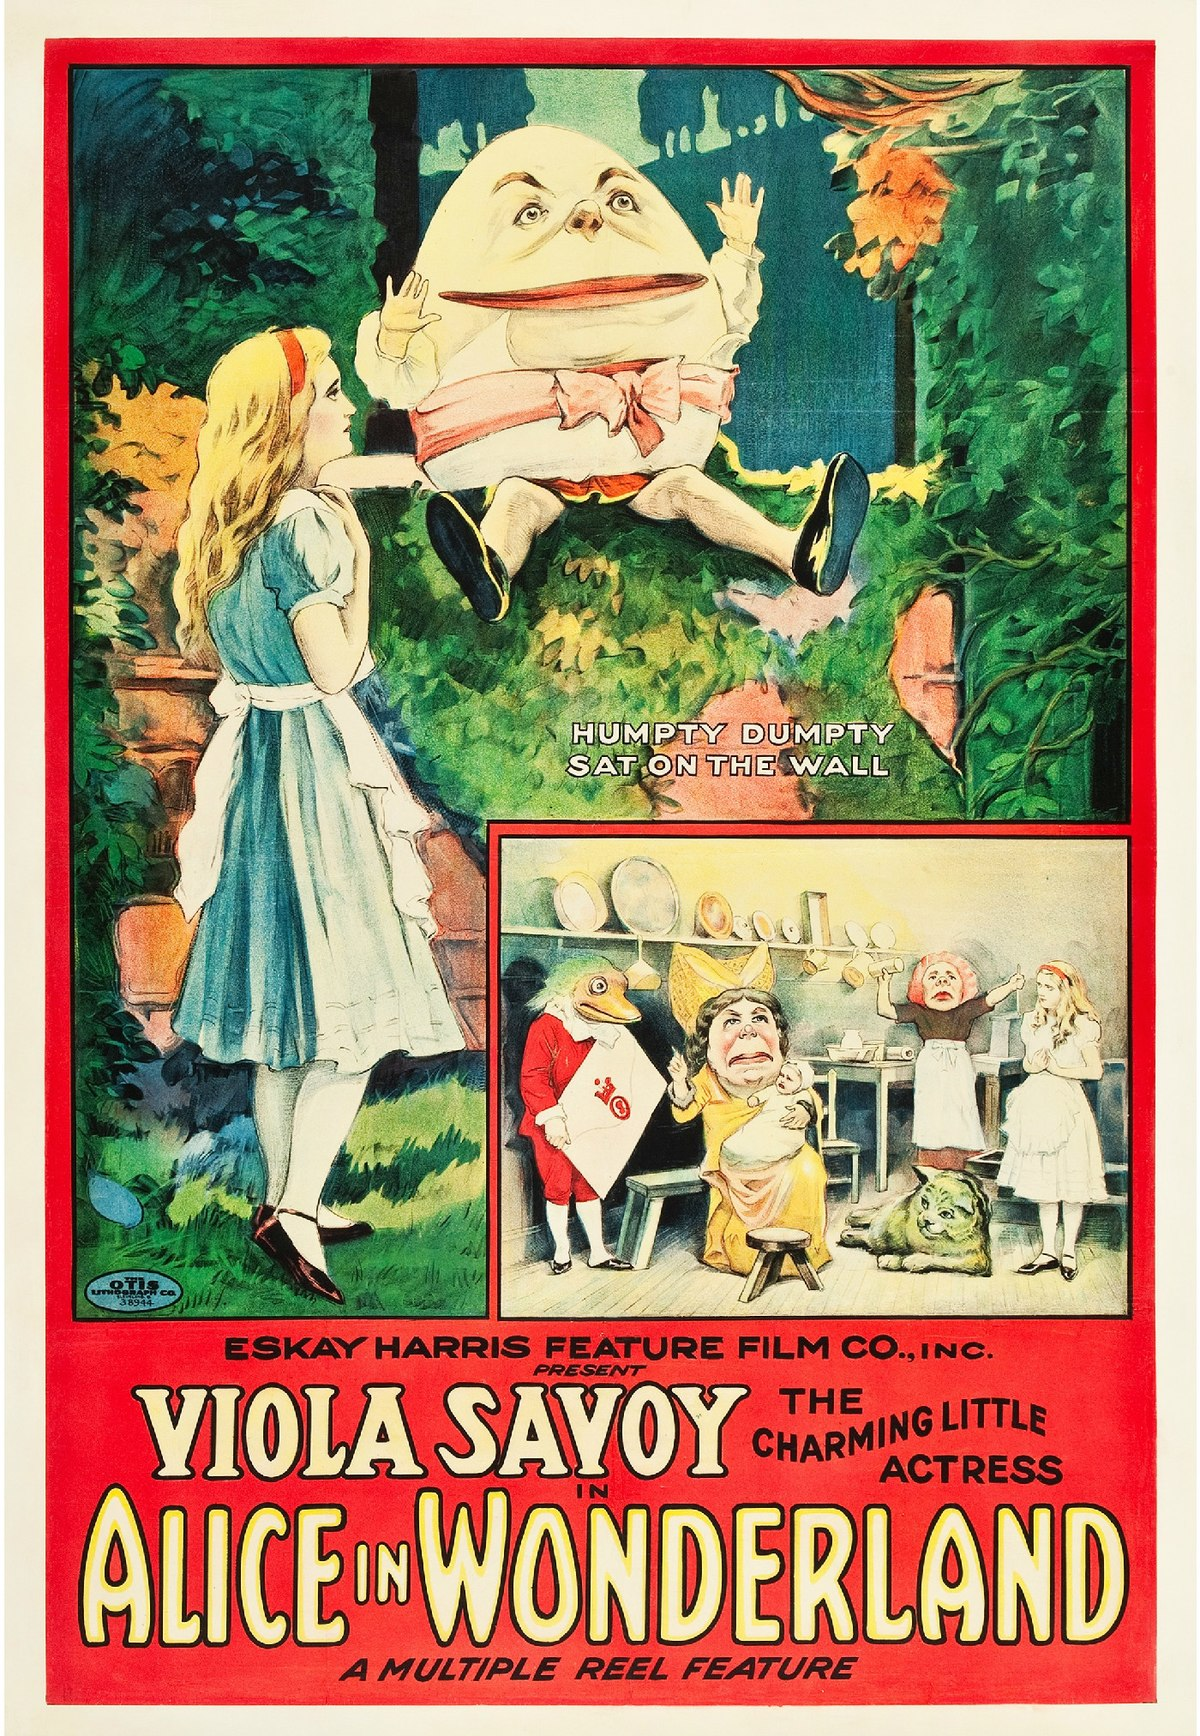 Alice in Wonderland (1915 film) - Wikipedia